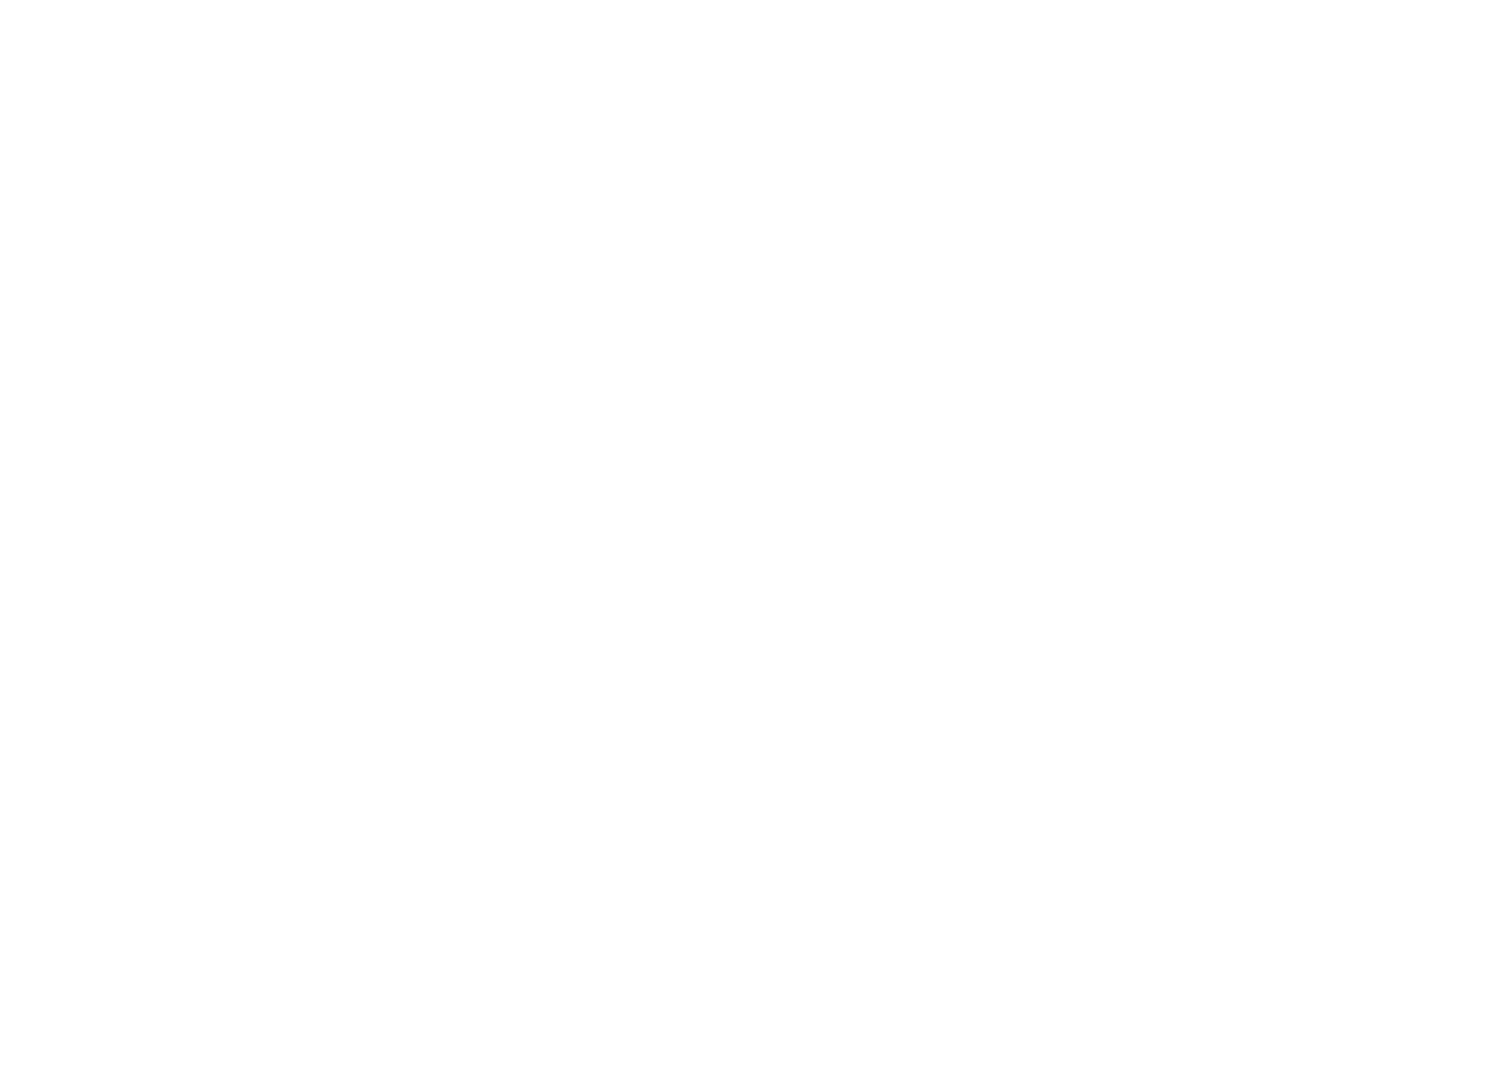 Crawford & Power